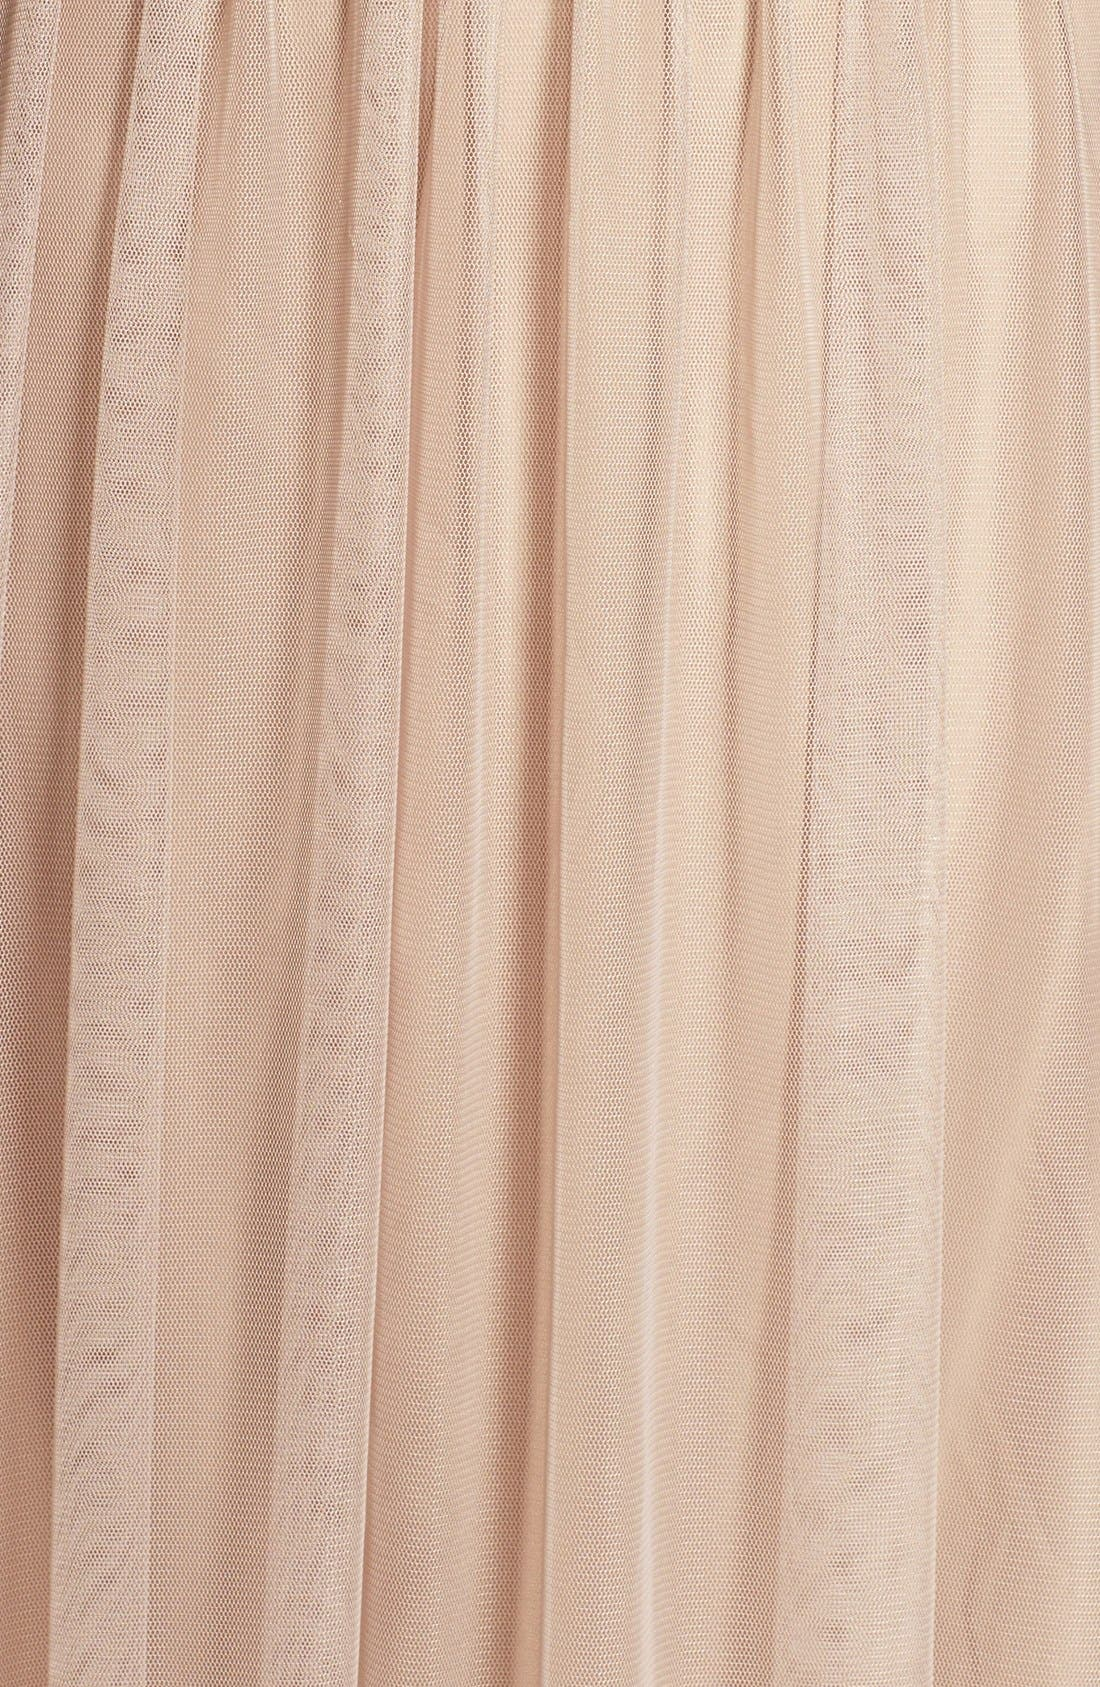 'Alyce' Illusion V-Neck Pleat Tulle Gown,                             Alternate thumbnail 15, color,